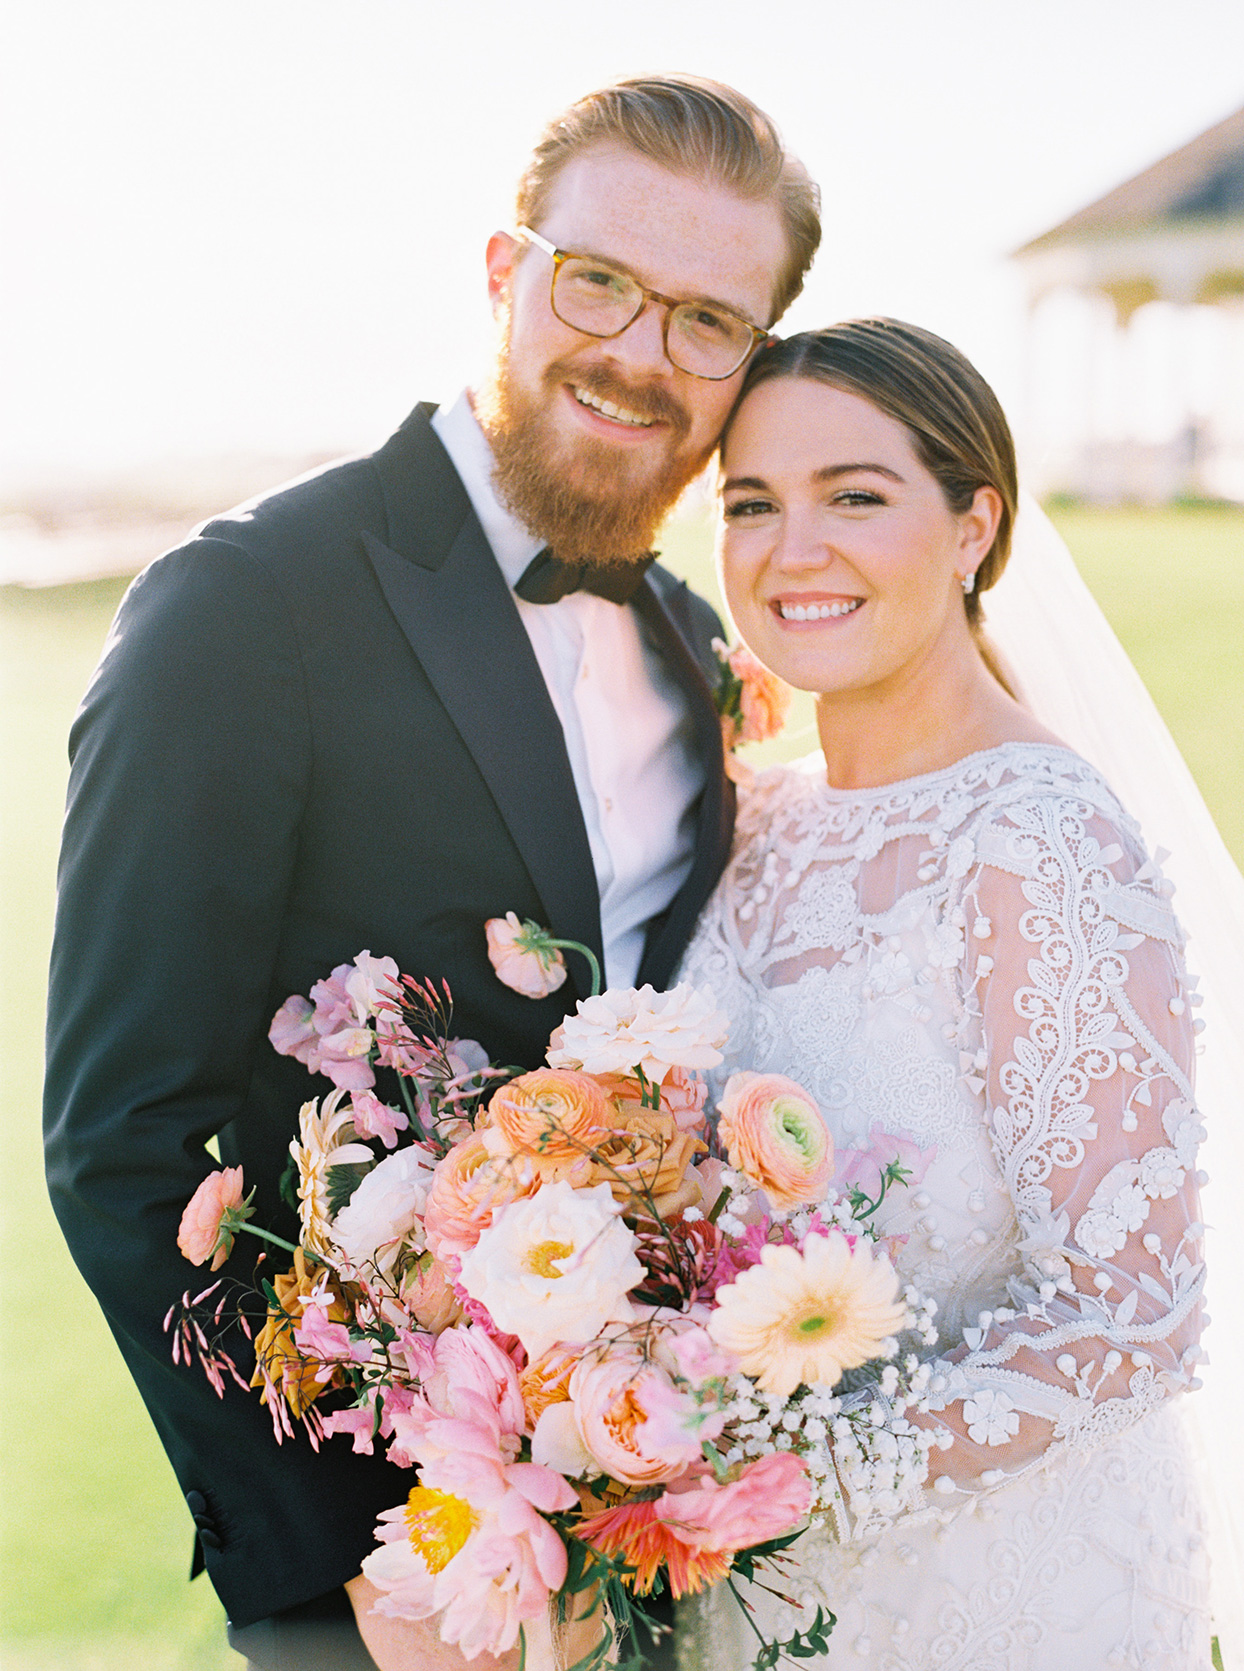 lauren dan wedding couple smiling with floral bouquet